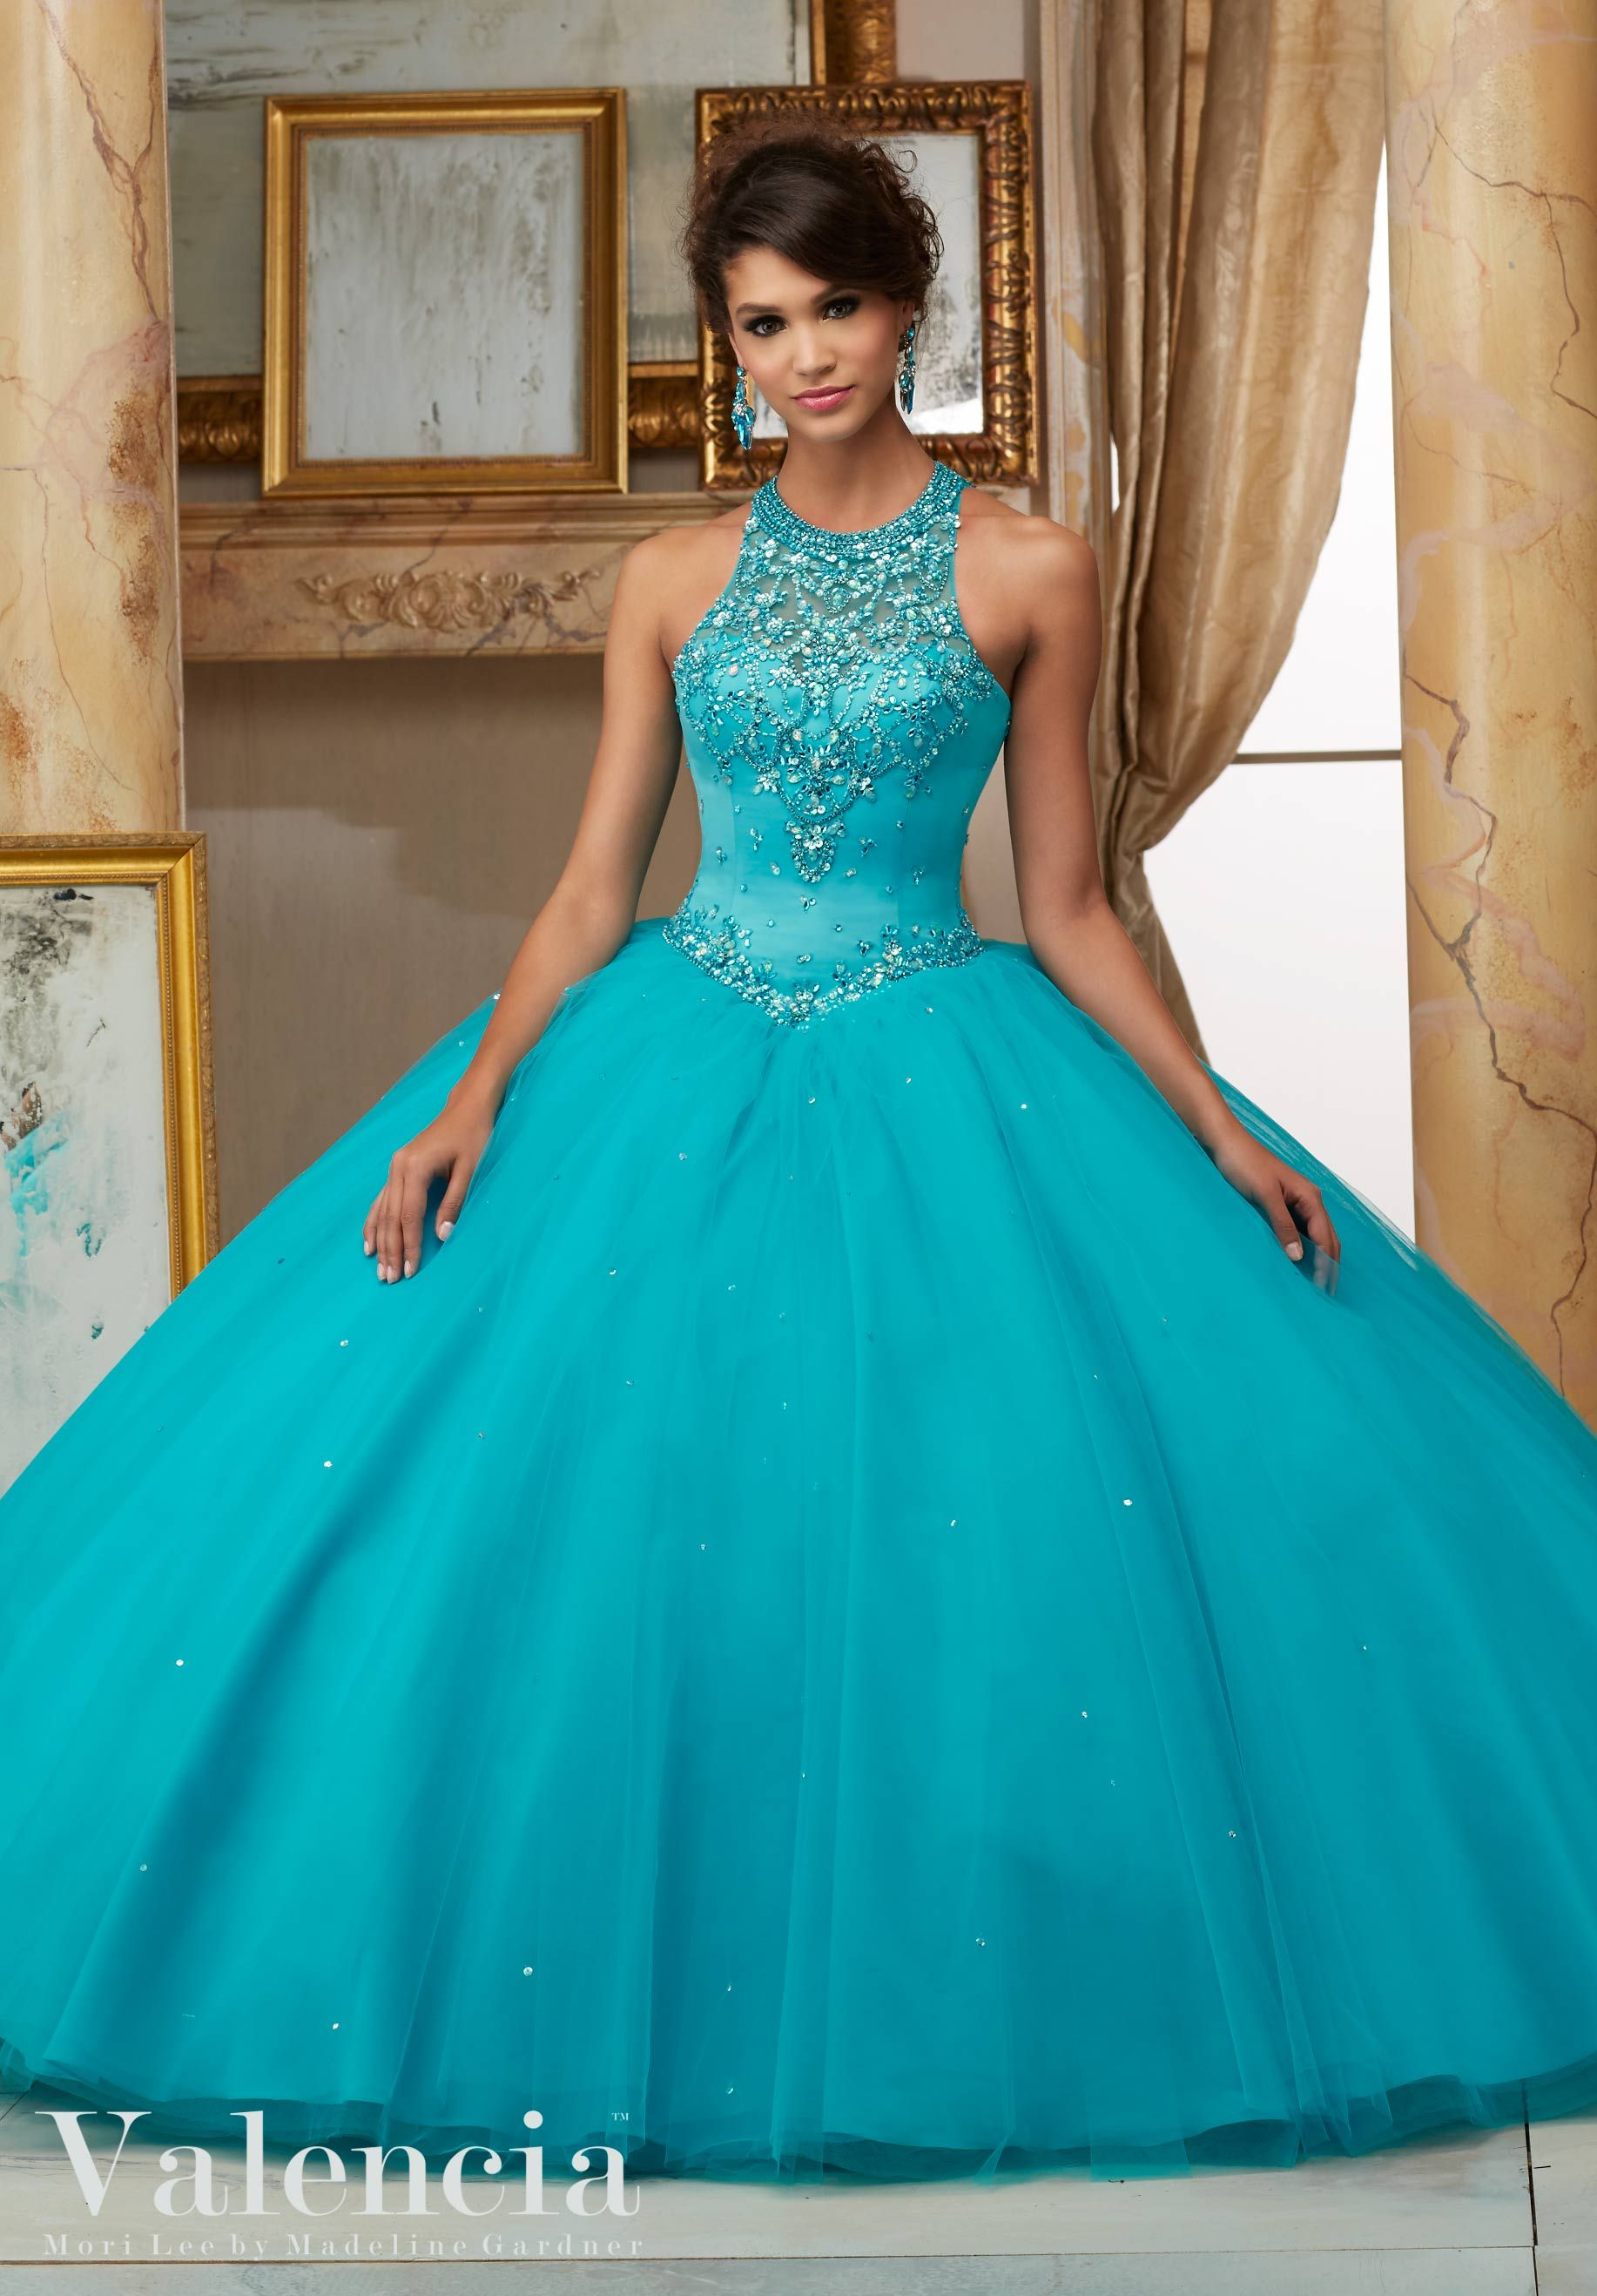 48575a2902c Jeweled Beaded Satin Bodice on Tulle Ball Gown Quinceanera Dress Designed  by Madeline Gardner. Matching Bolero Jacket. Colors Available  Capri